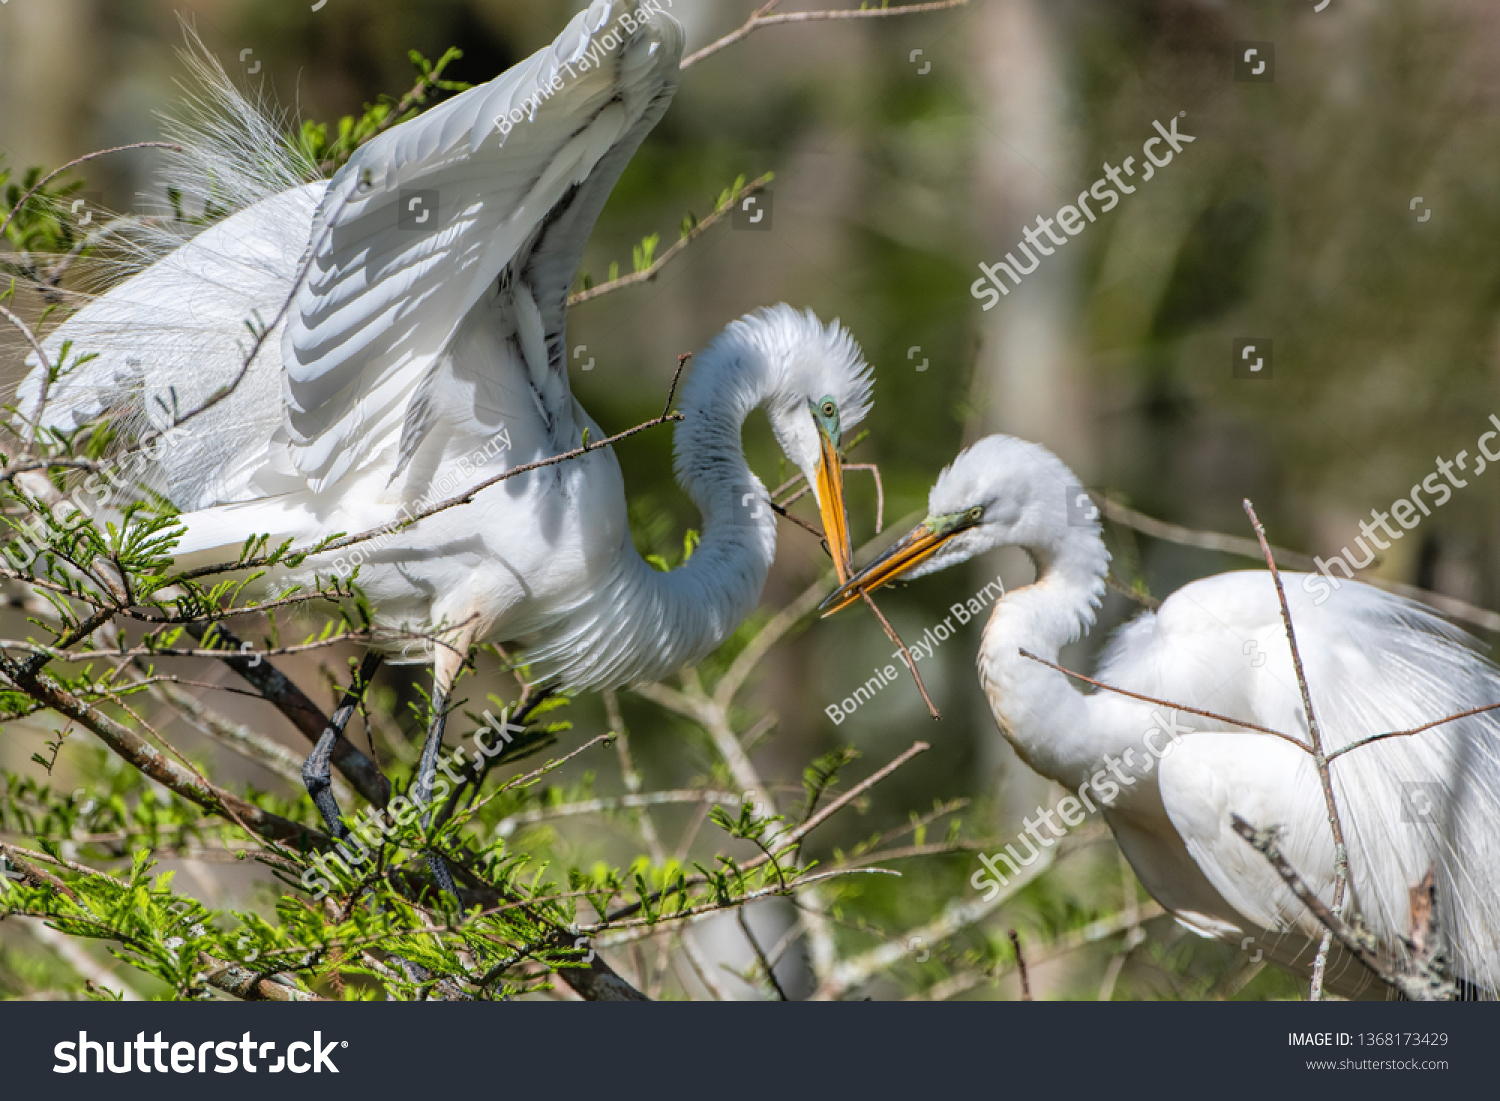 Great White Egret Pair With Sticks in Beaks as They Build Spring Nest  #1368173429